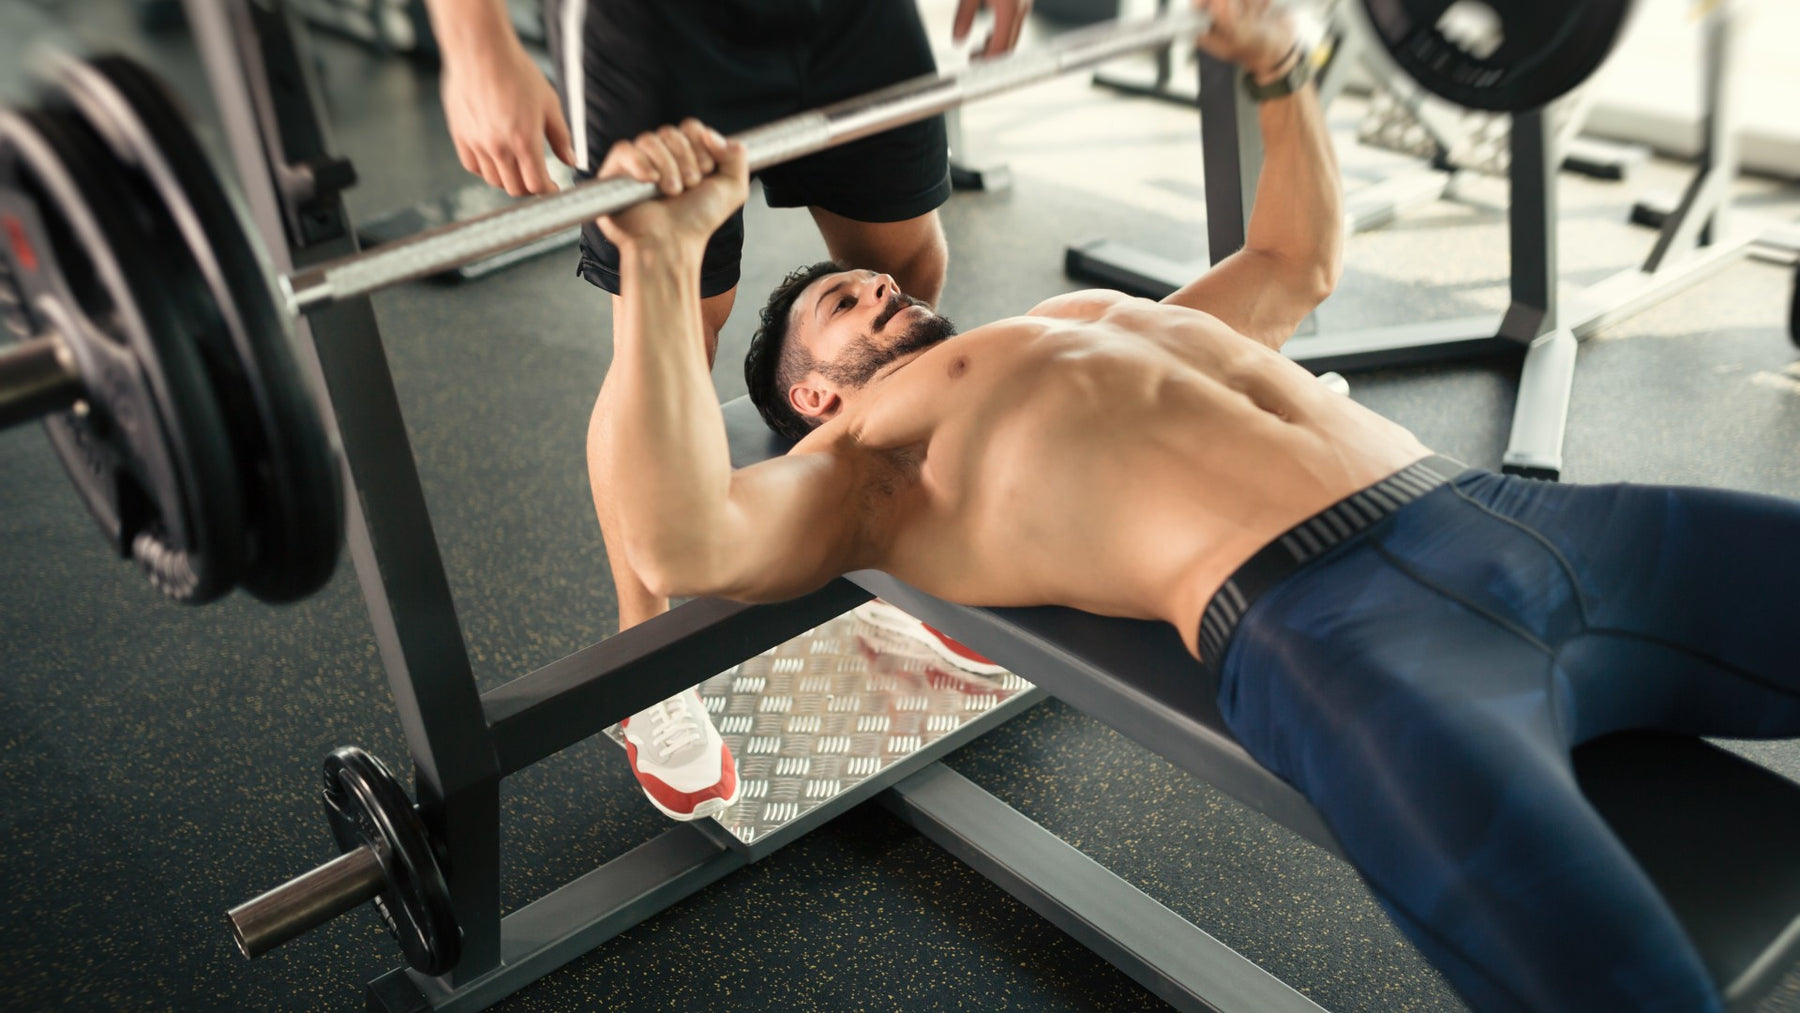 10 Big Workout Mistakes and How to Fix Them